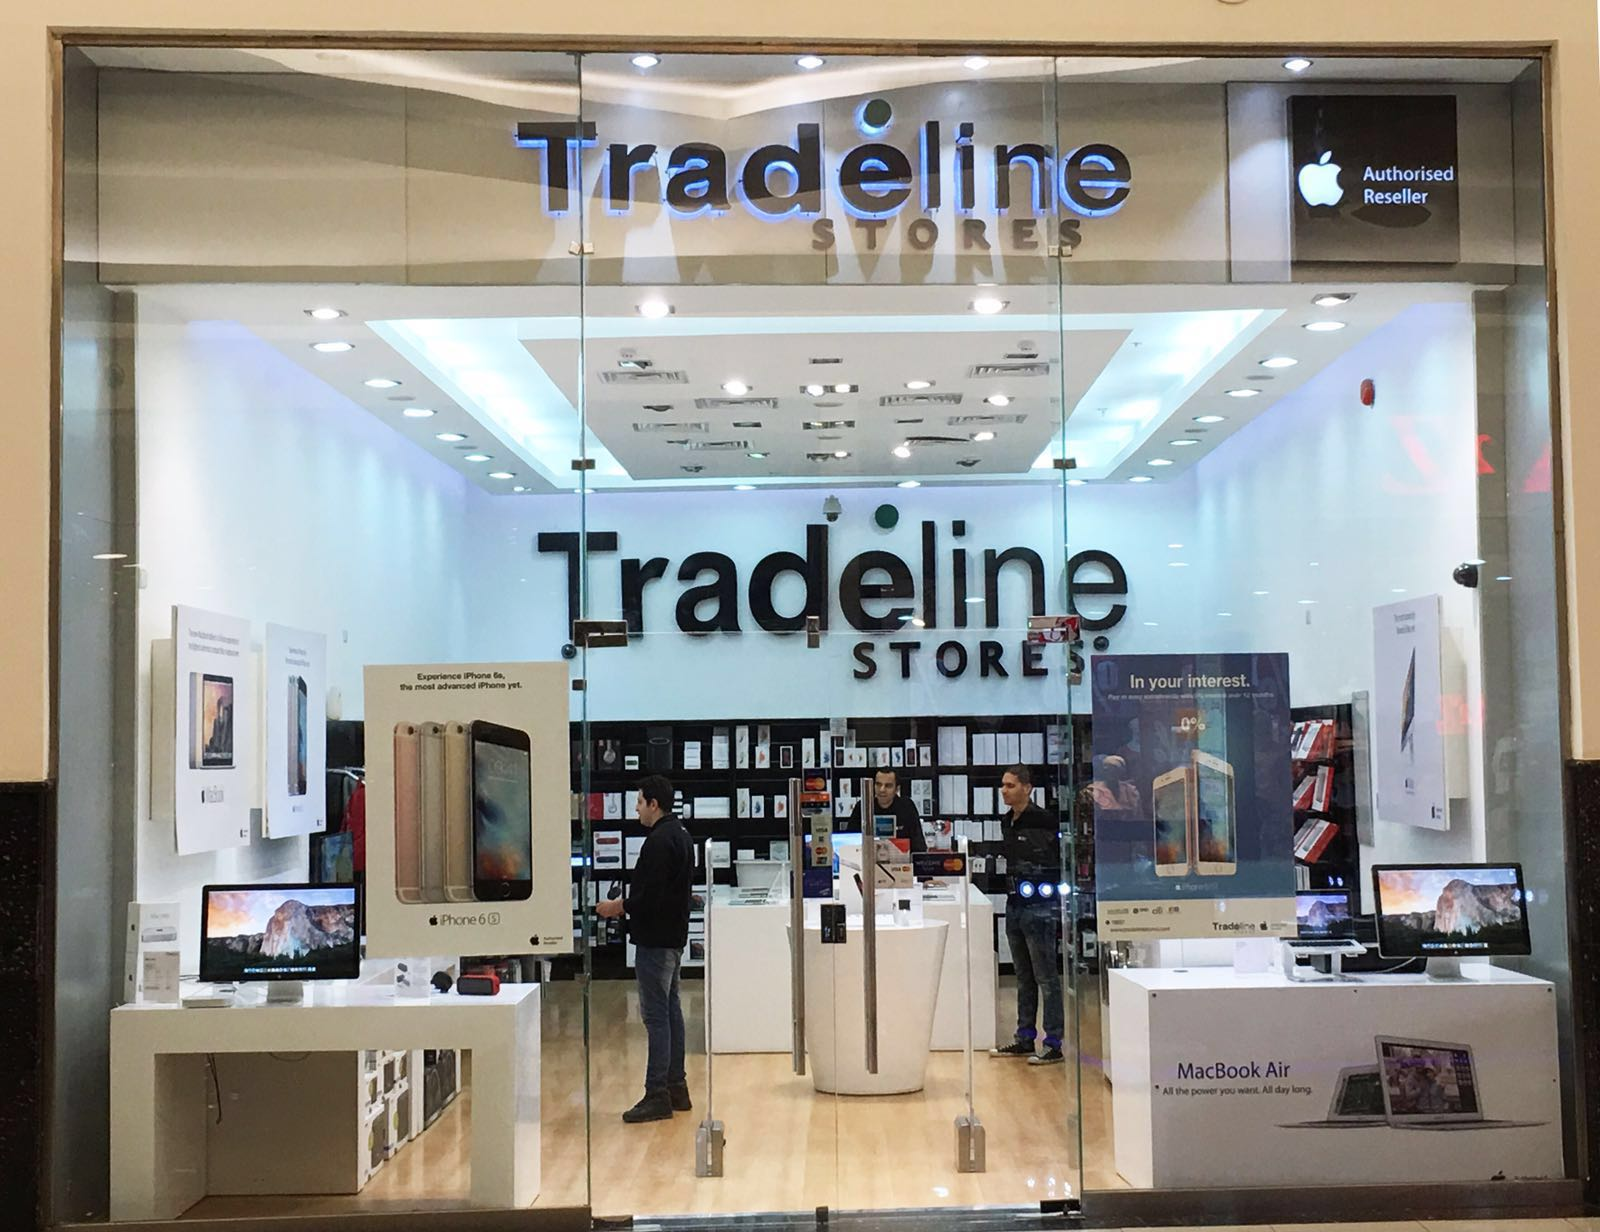 Tradeline stores apple authorised reseller egypt for Shopping in cairo